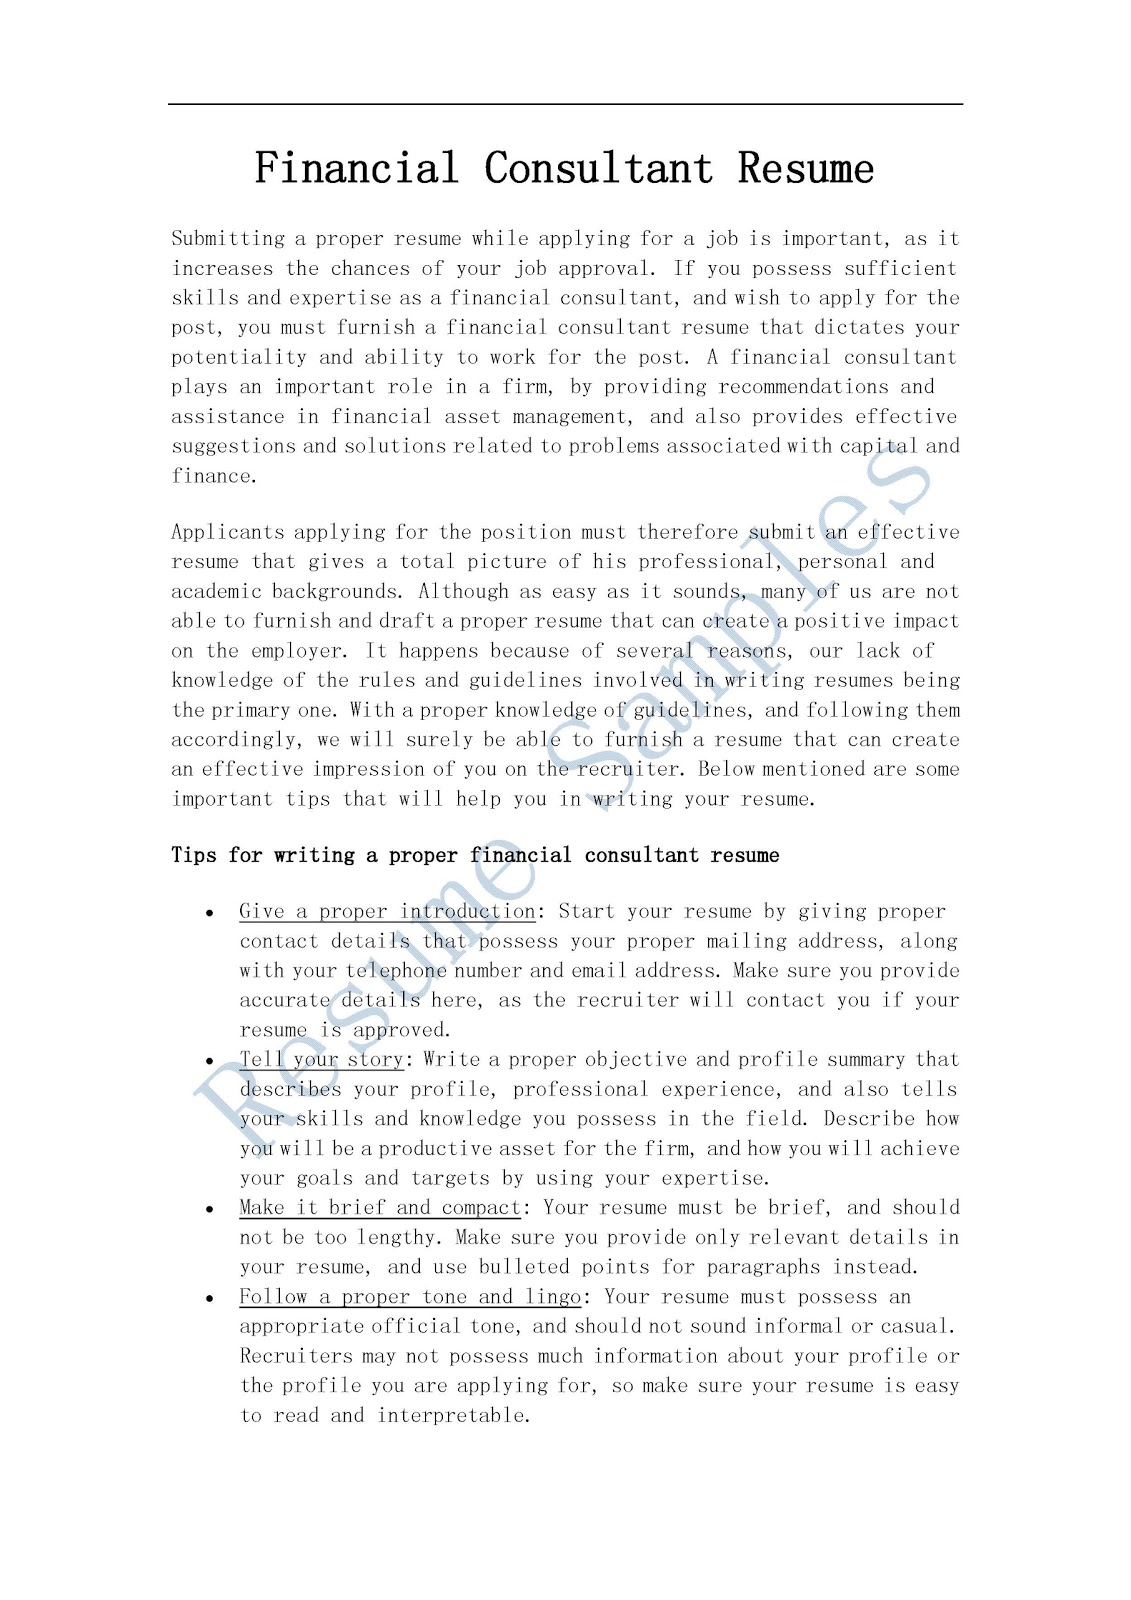 Resume Consultants Resume Samples Financial Consultant Resume